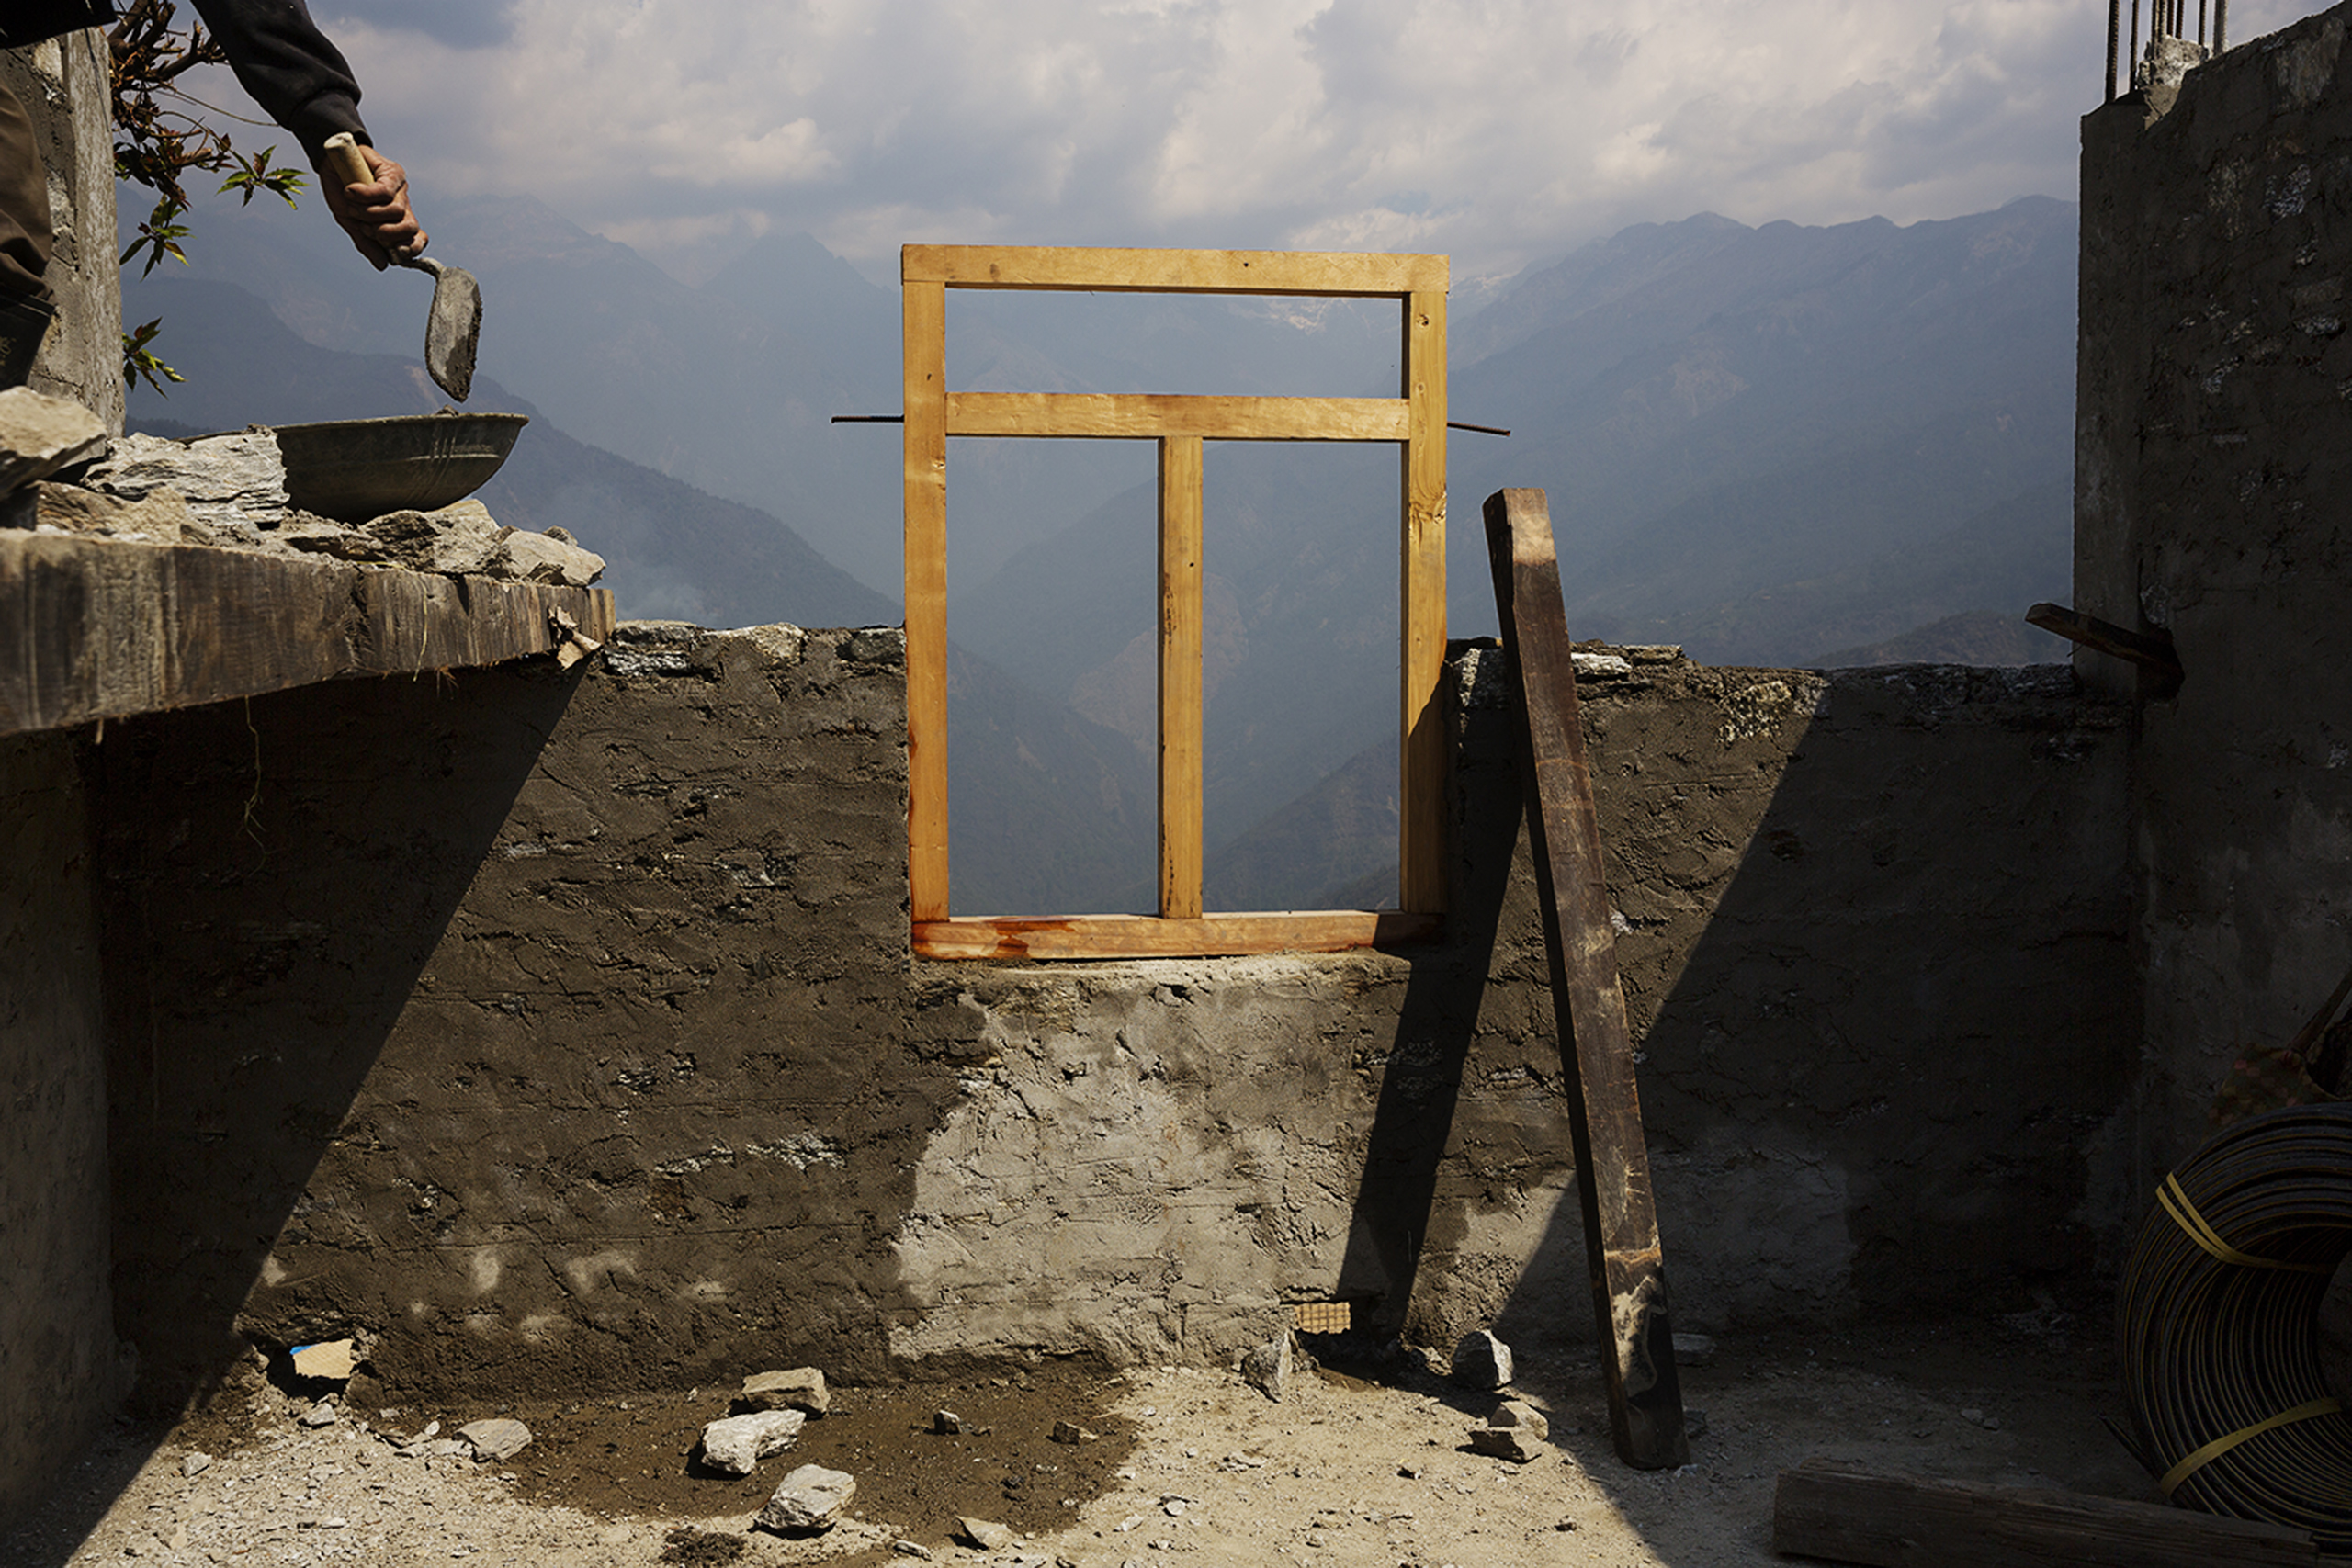 Approaching the first anniversary of Nepal's 2015 quakes, money from international donors has yet to reach victims. A  political fight overtook  reconstruction efforts, leaving villagers in communities like Barpak, needing to rebuild on their own, April 7, 2016.